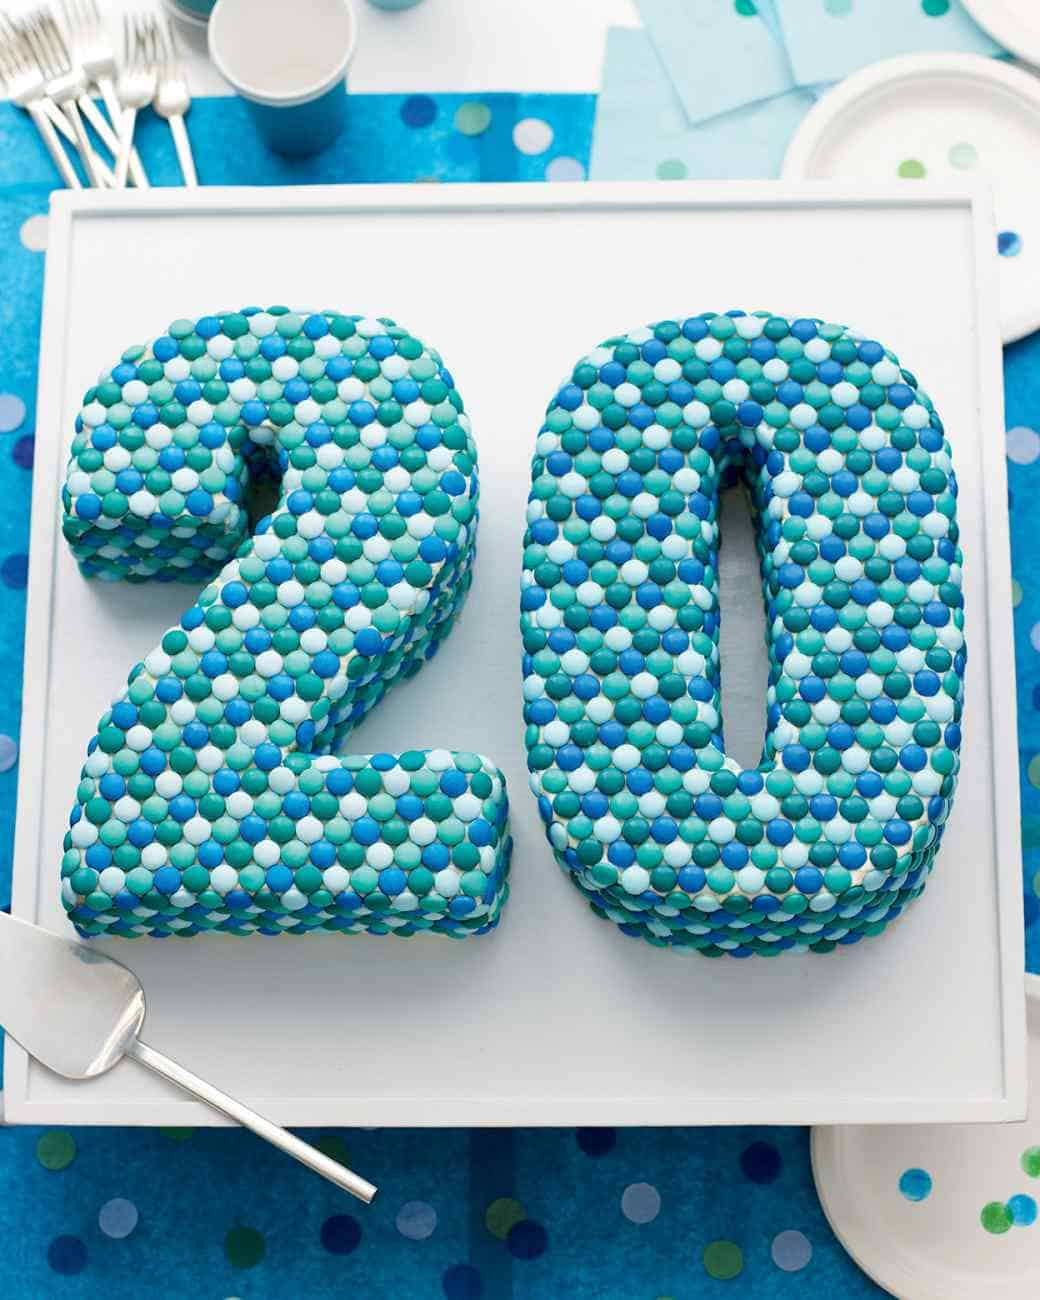 90th birthday cakes and cake ideas for M m cake decoration ideas